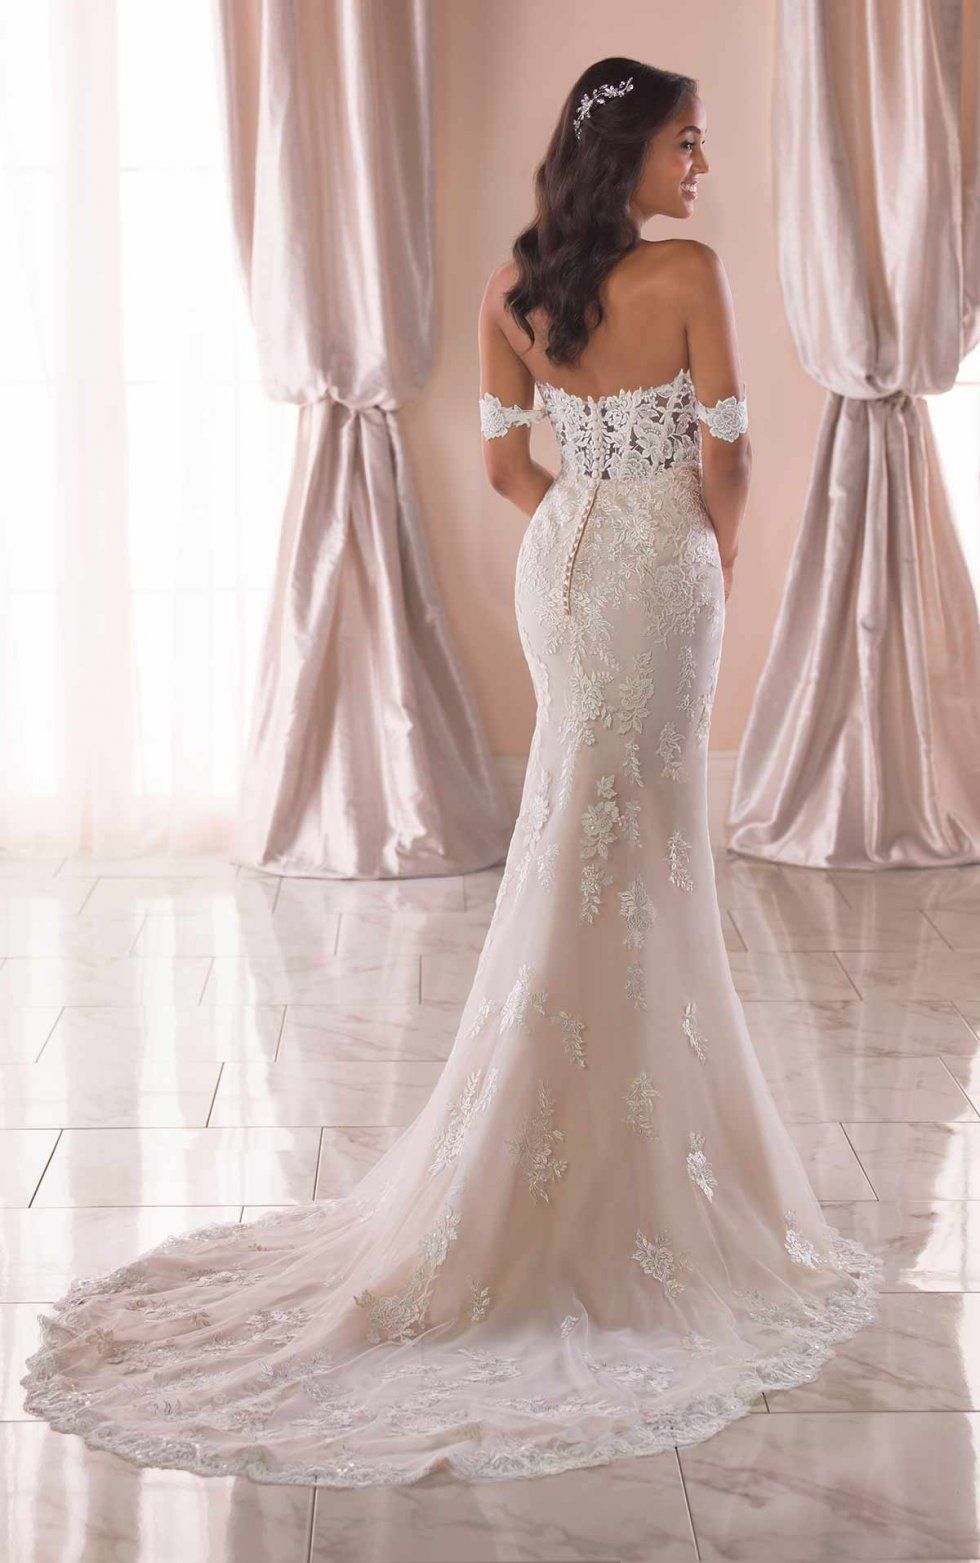 Romantic Lace Wedding Dress With Off The Shoulder Straps Stella York Wedding Dresses In 2020 Romantic Wedding Dress Lace Wedding Dresses Lace Ball Gown Wedding Dress